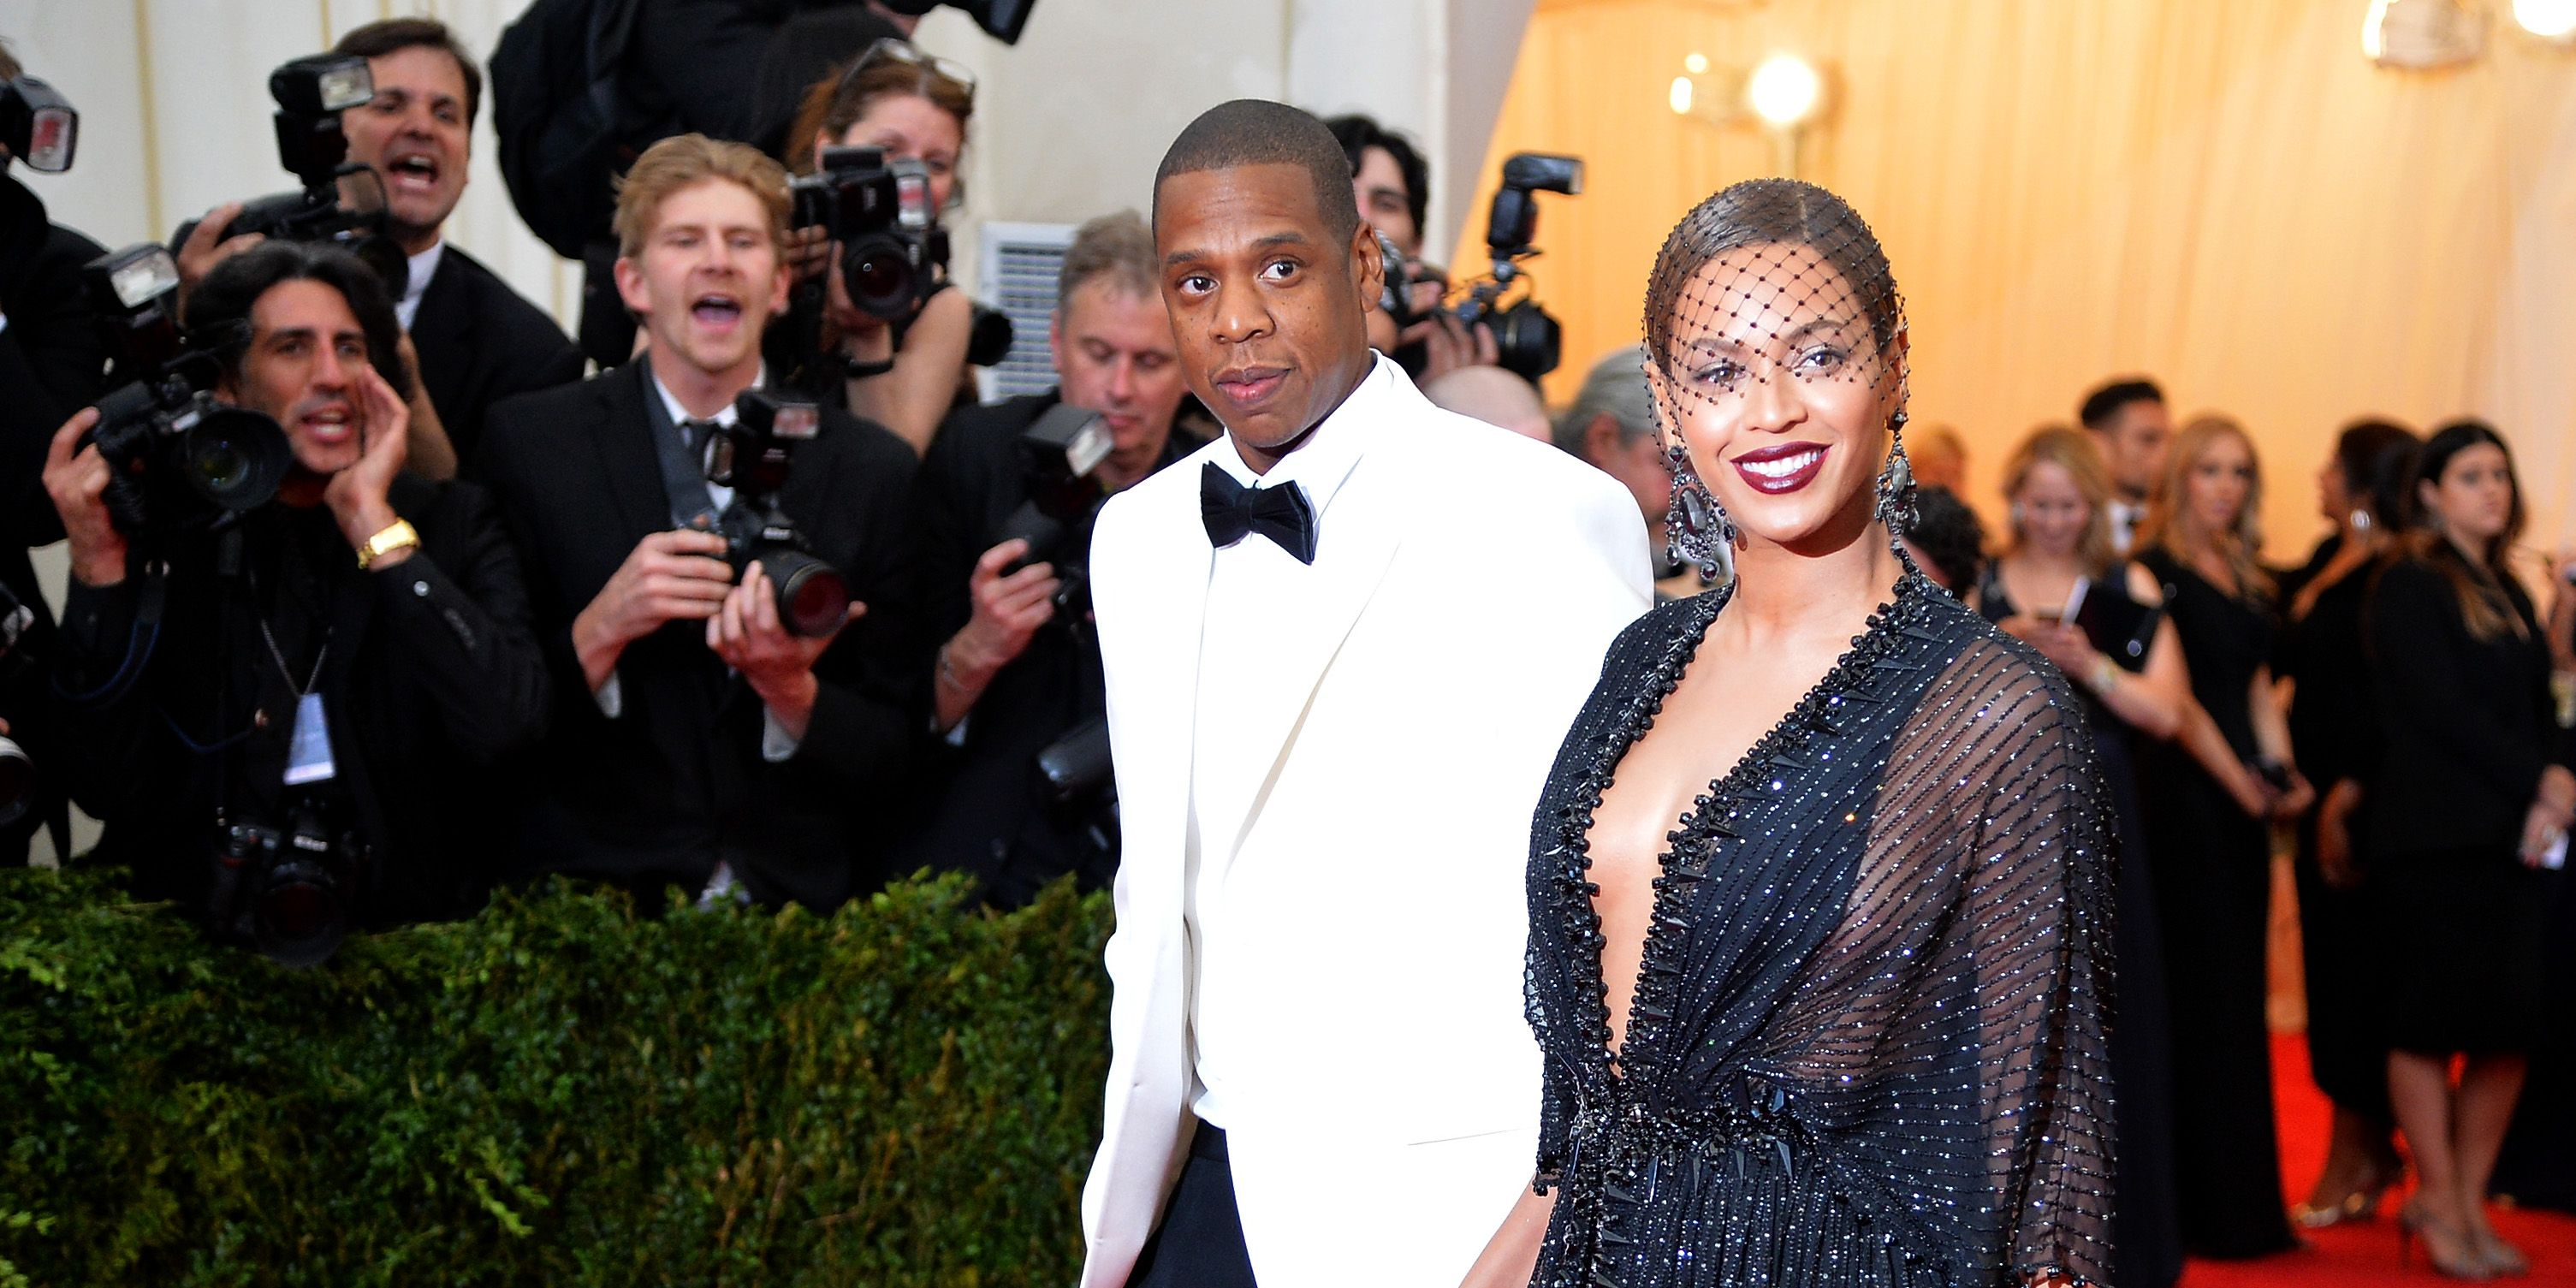 Jay Z and Beyonce attend the 'Charles James: Beyond Fashion' Costume Institute Gala at the Metropolitan Museum of Art on May 5, 2014 in New York City.